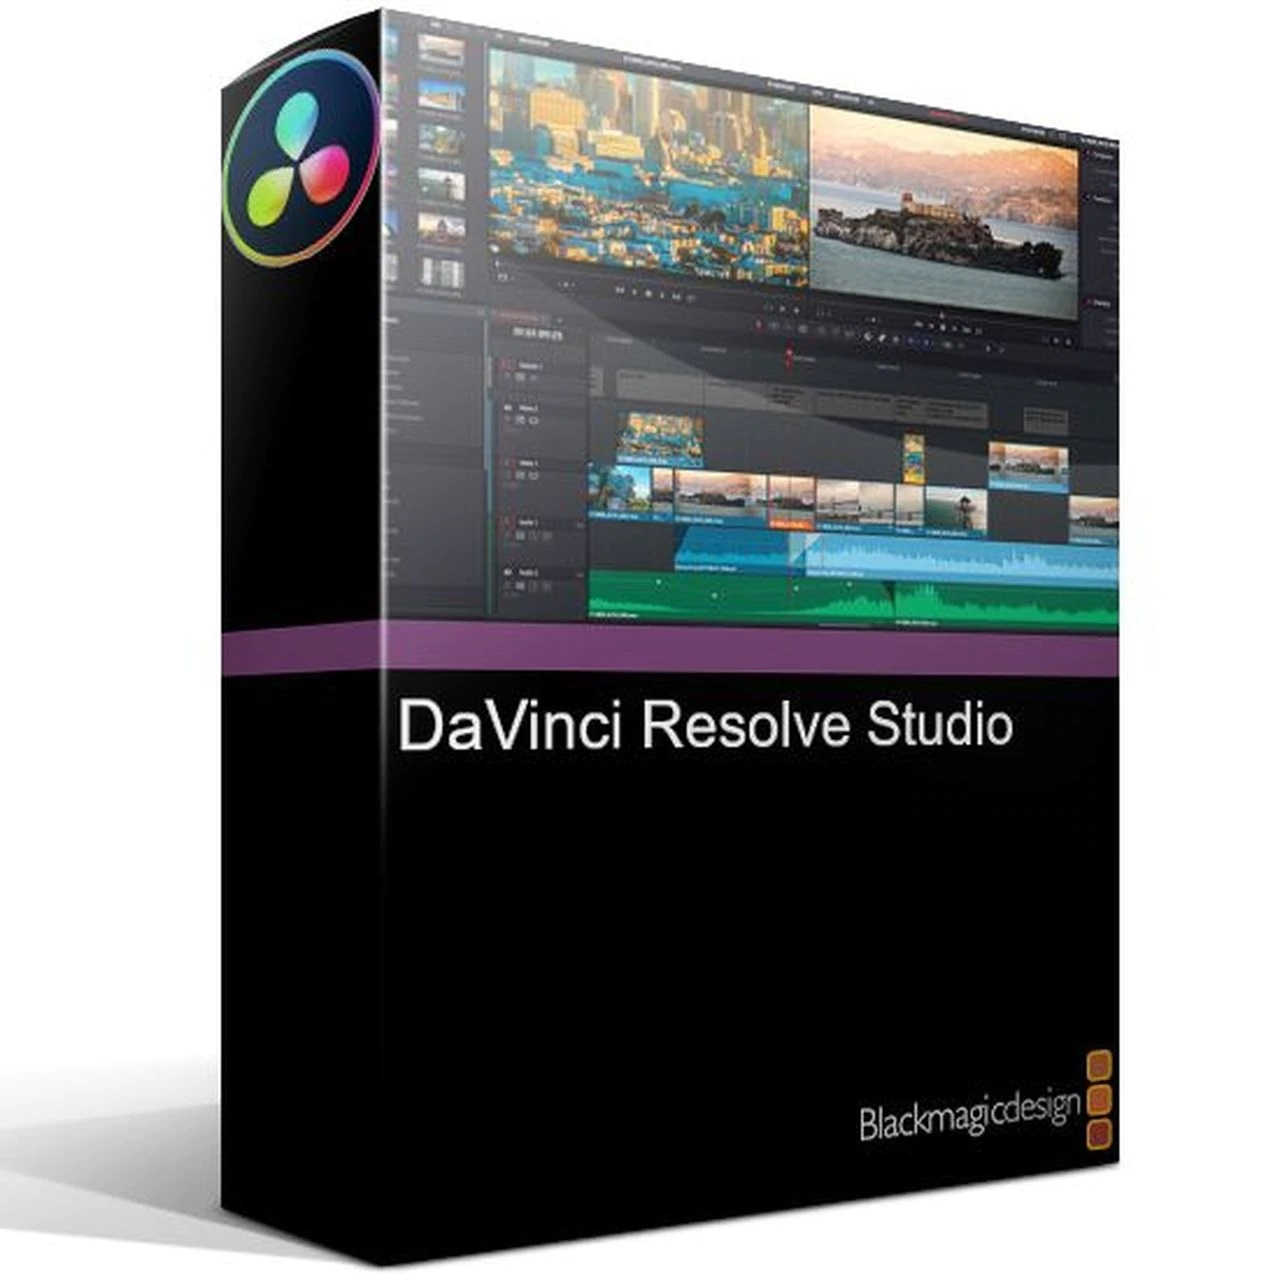 Stiahni si Programy Blackmagic Davinci Resolve Studio 16.0.0.60 x64